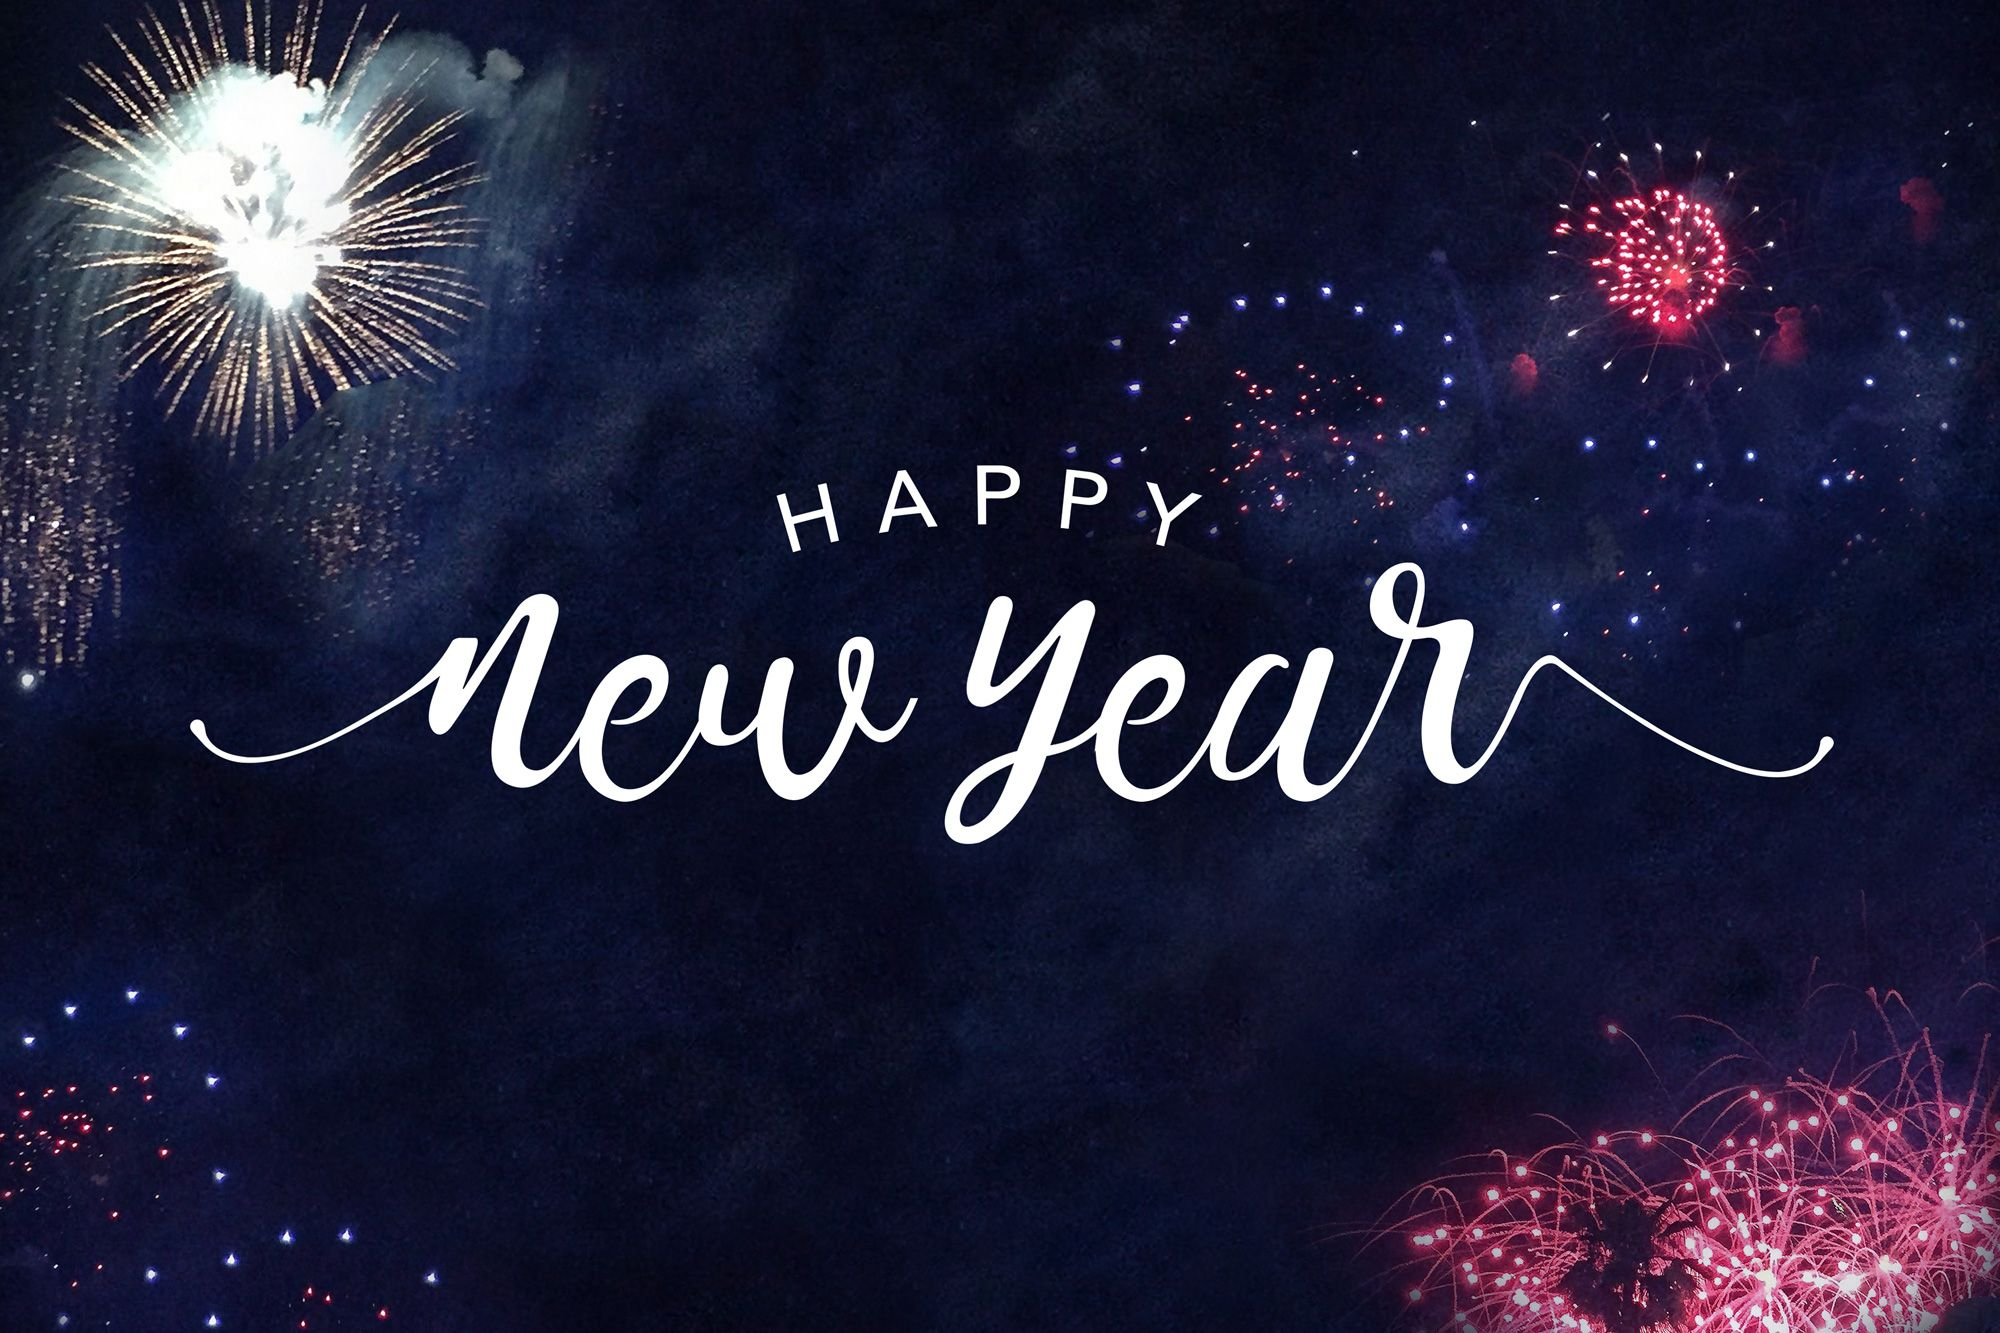 Happy New Year 4k Images, HD Wallpapers - Download